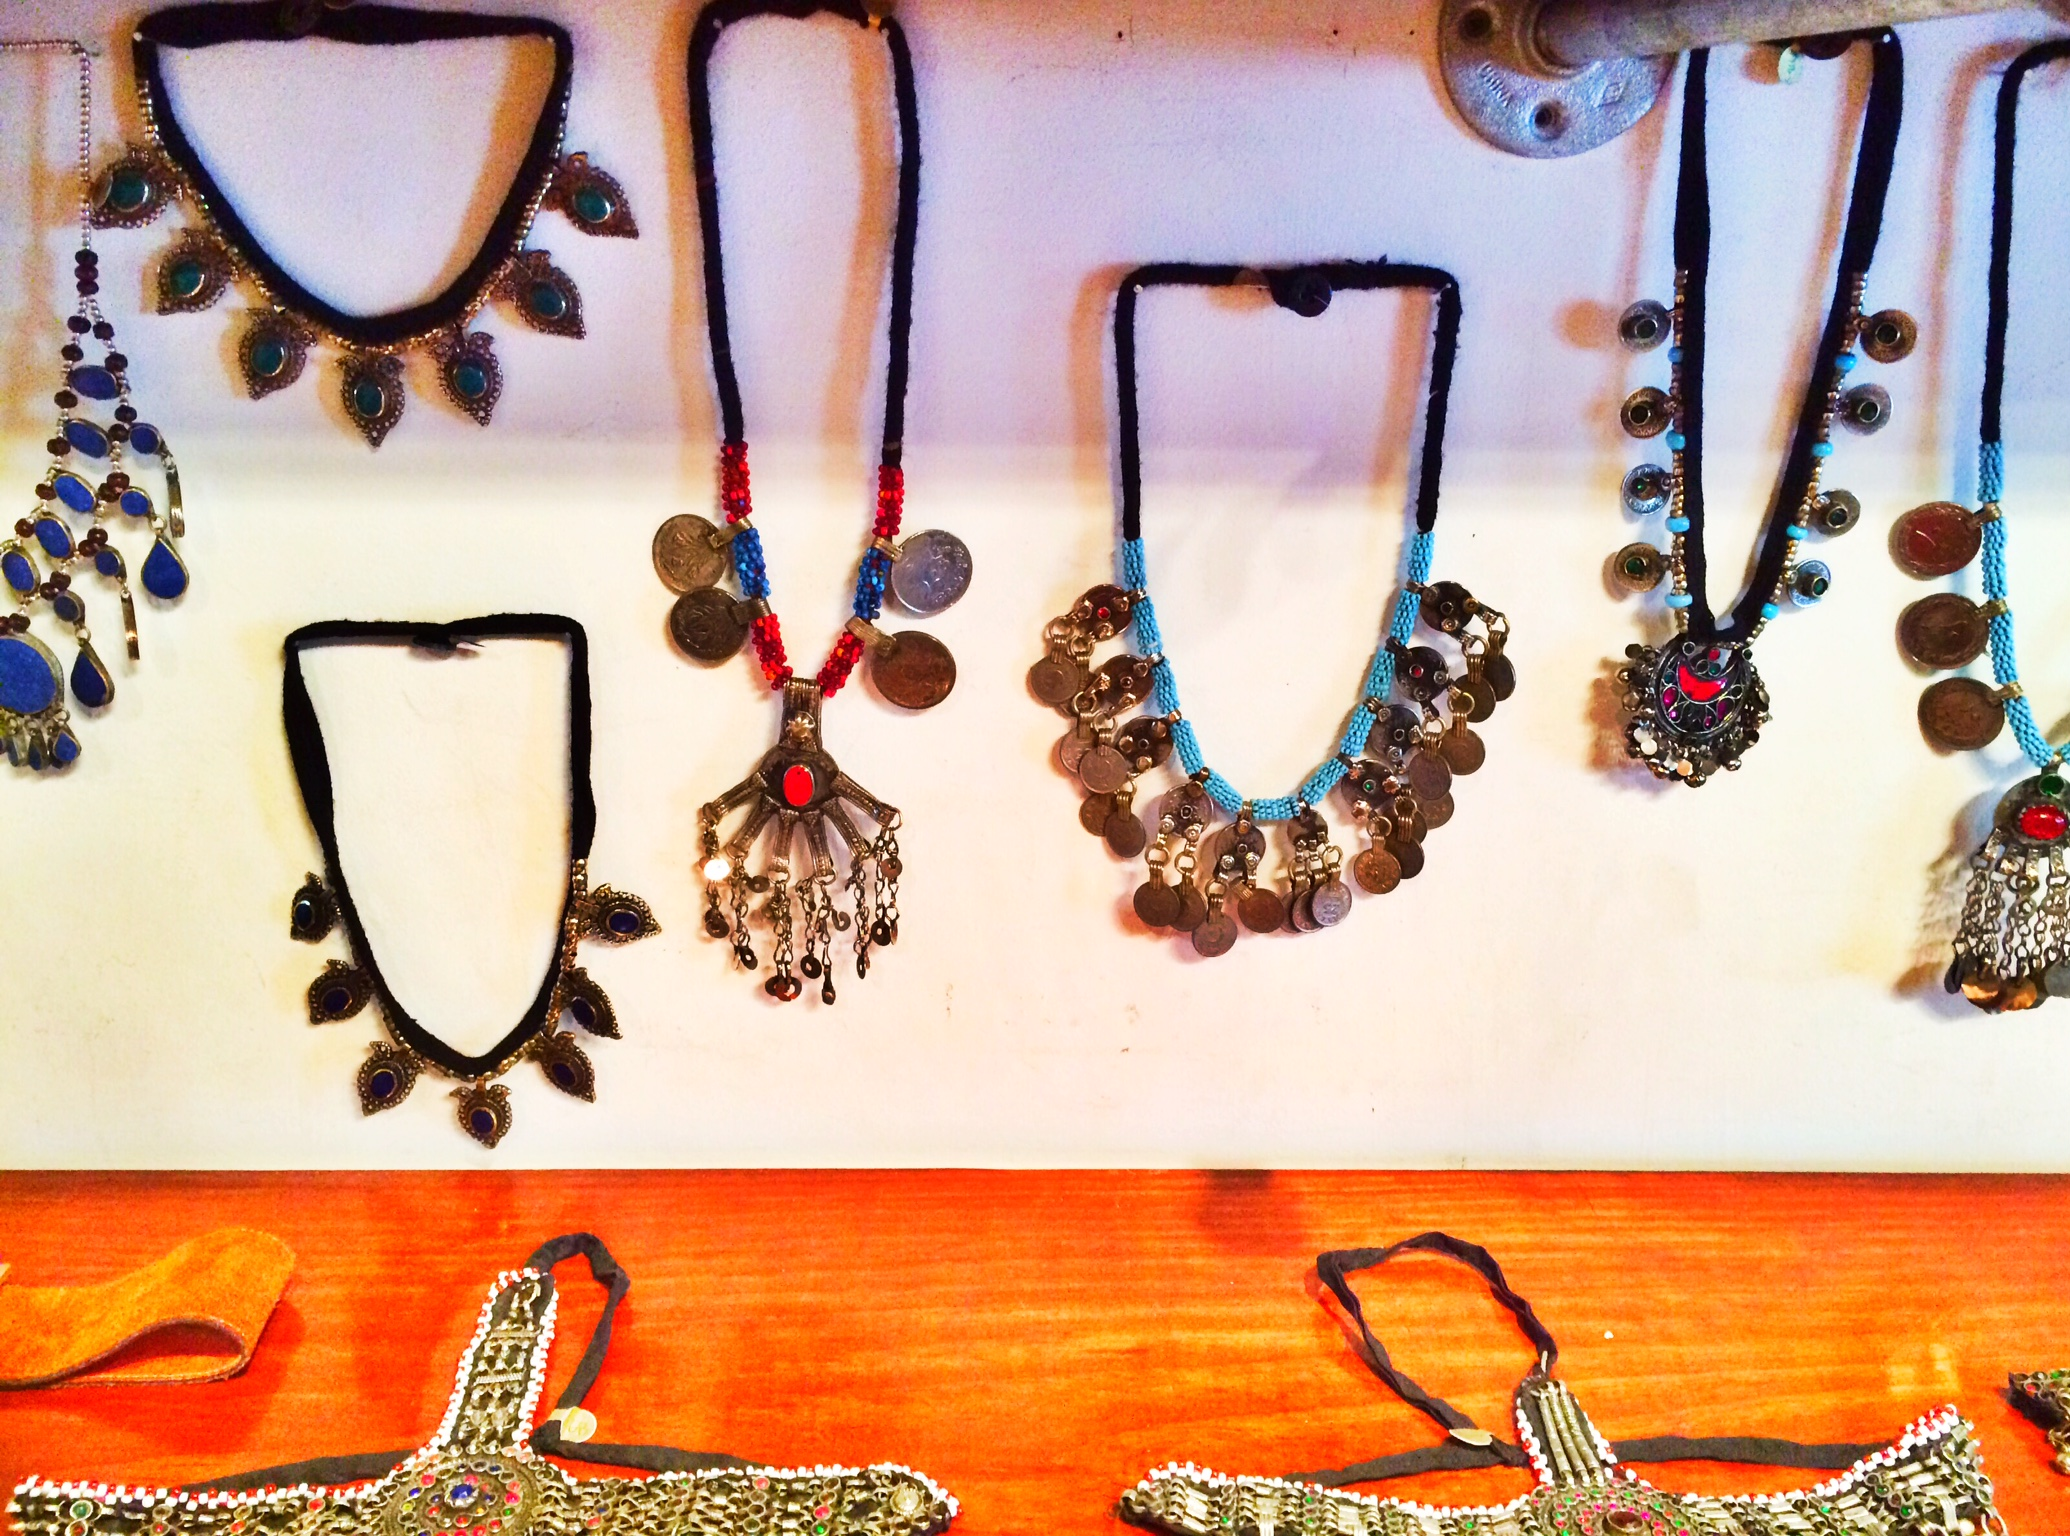 Raquel Greer Gordian discusses how Charm School Vintage is one of Austin's top shops for SXSW shopping.